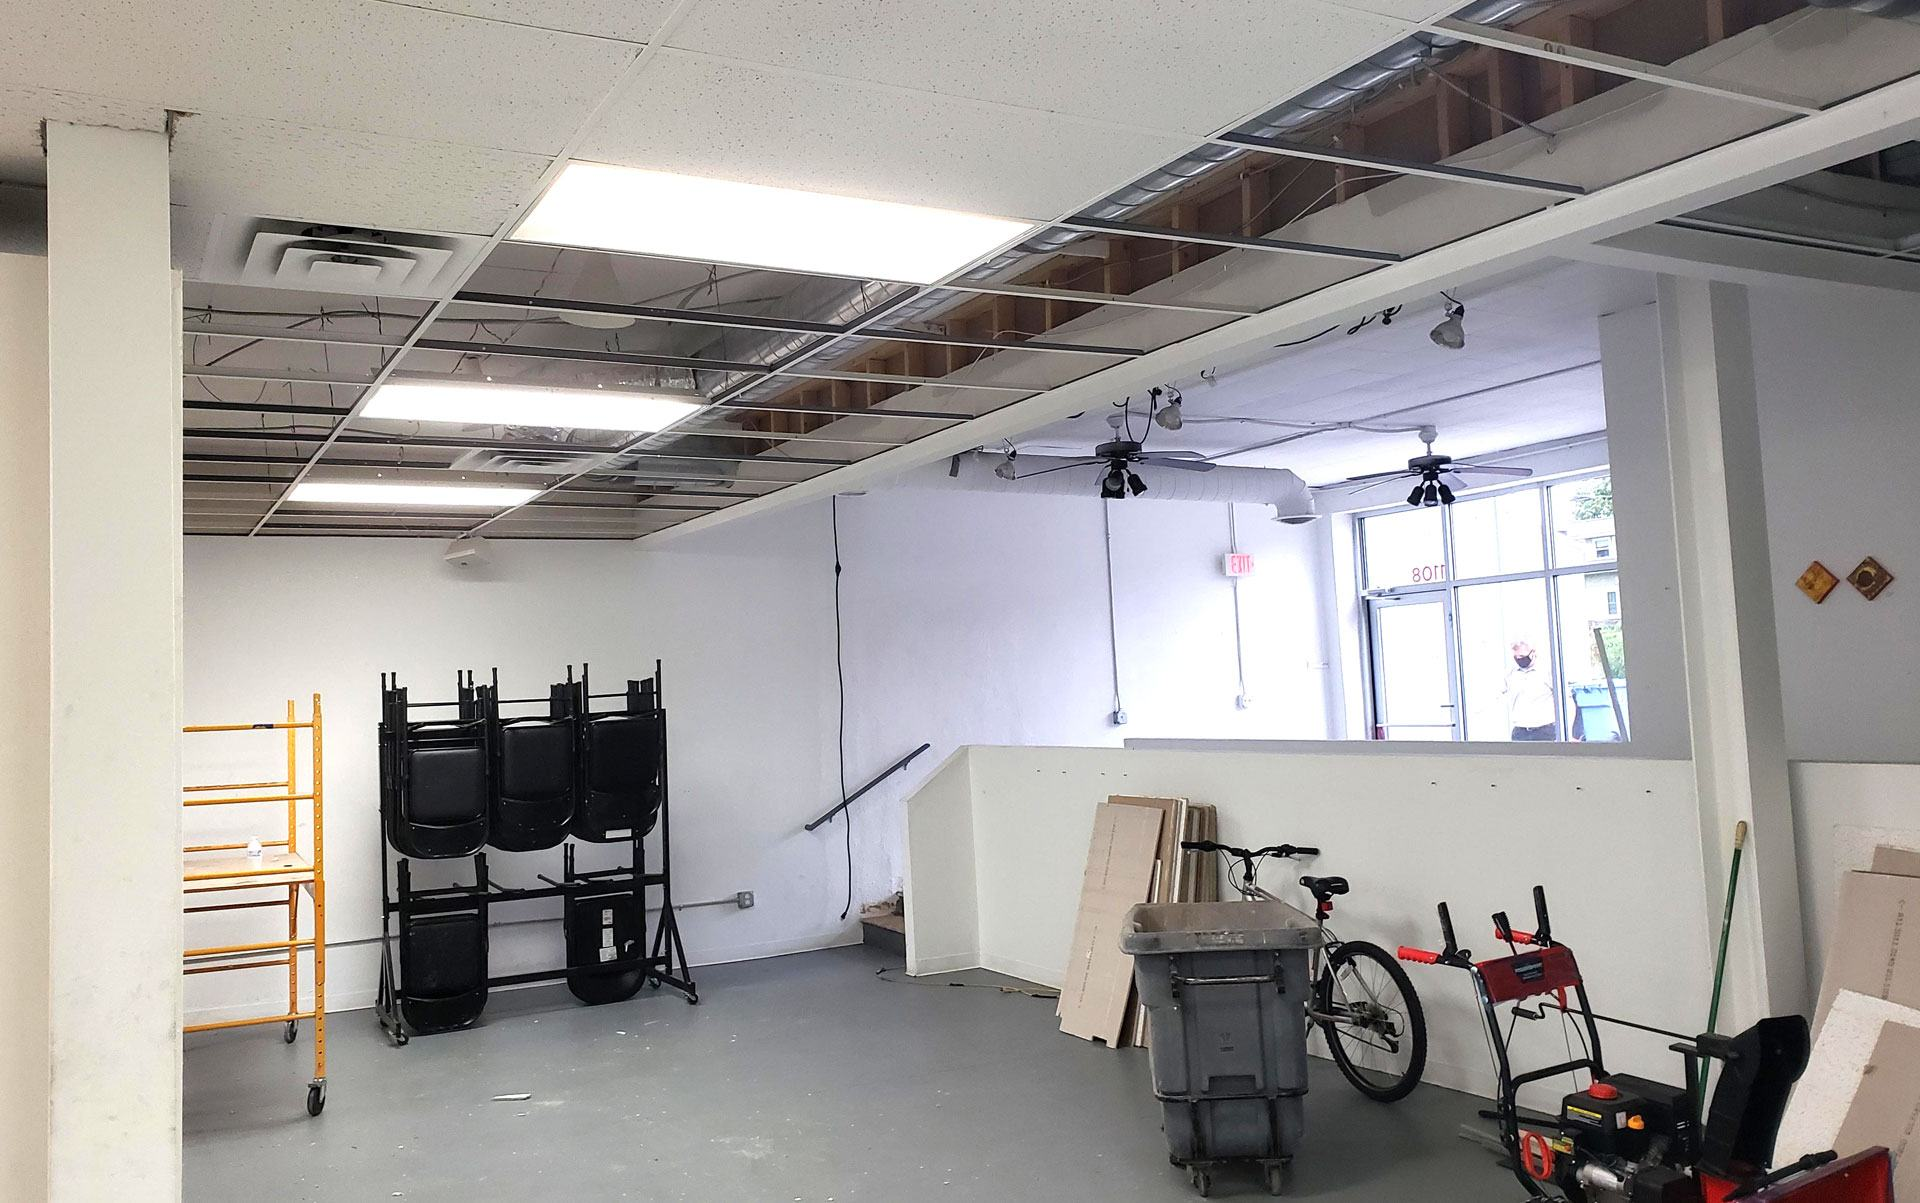 A partially empty, sparsely furnished and decorated studio space